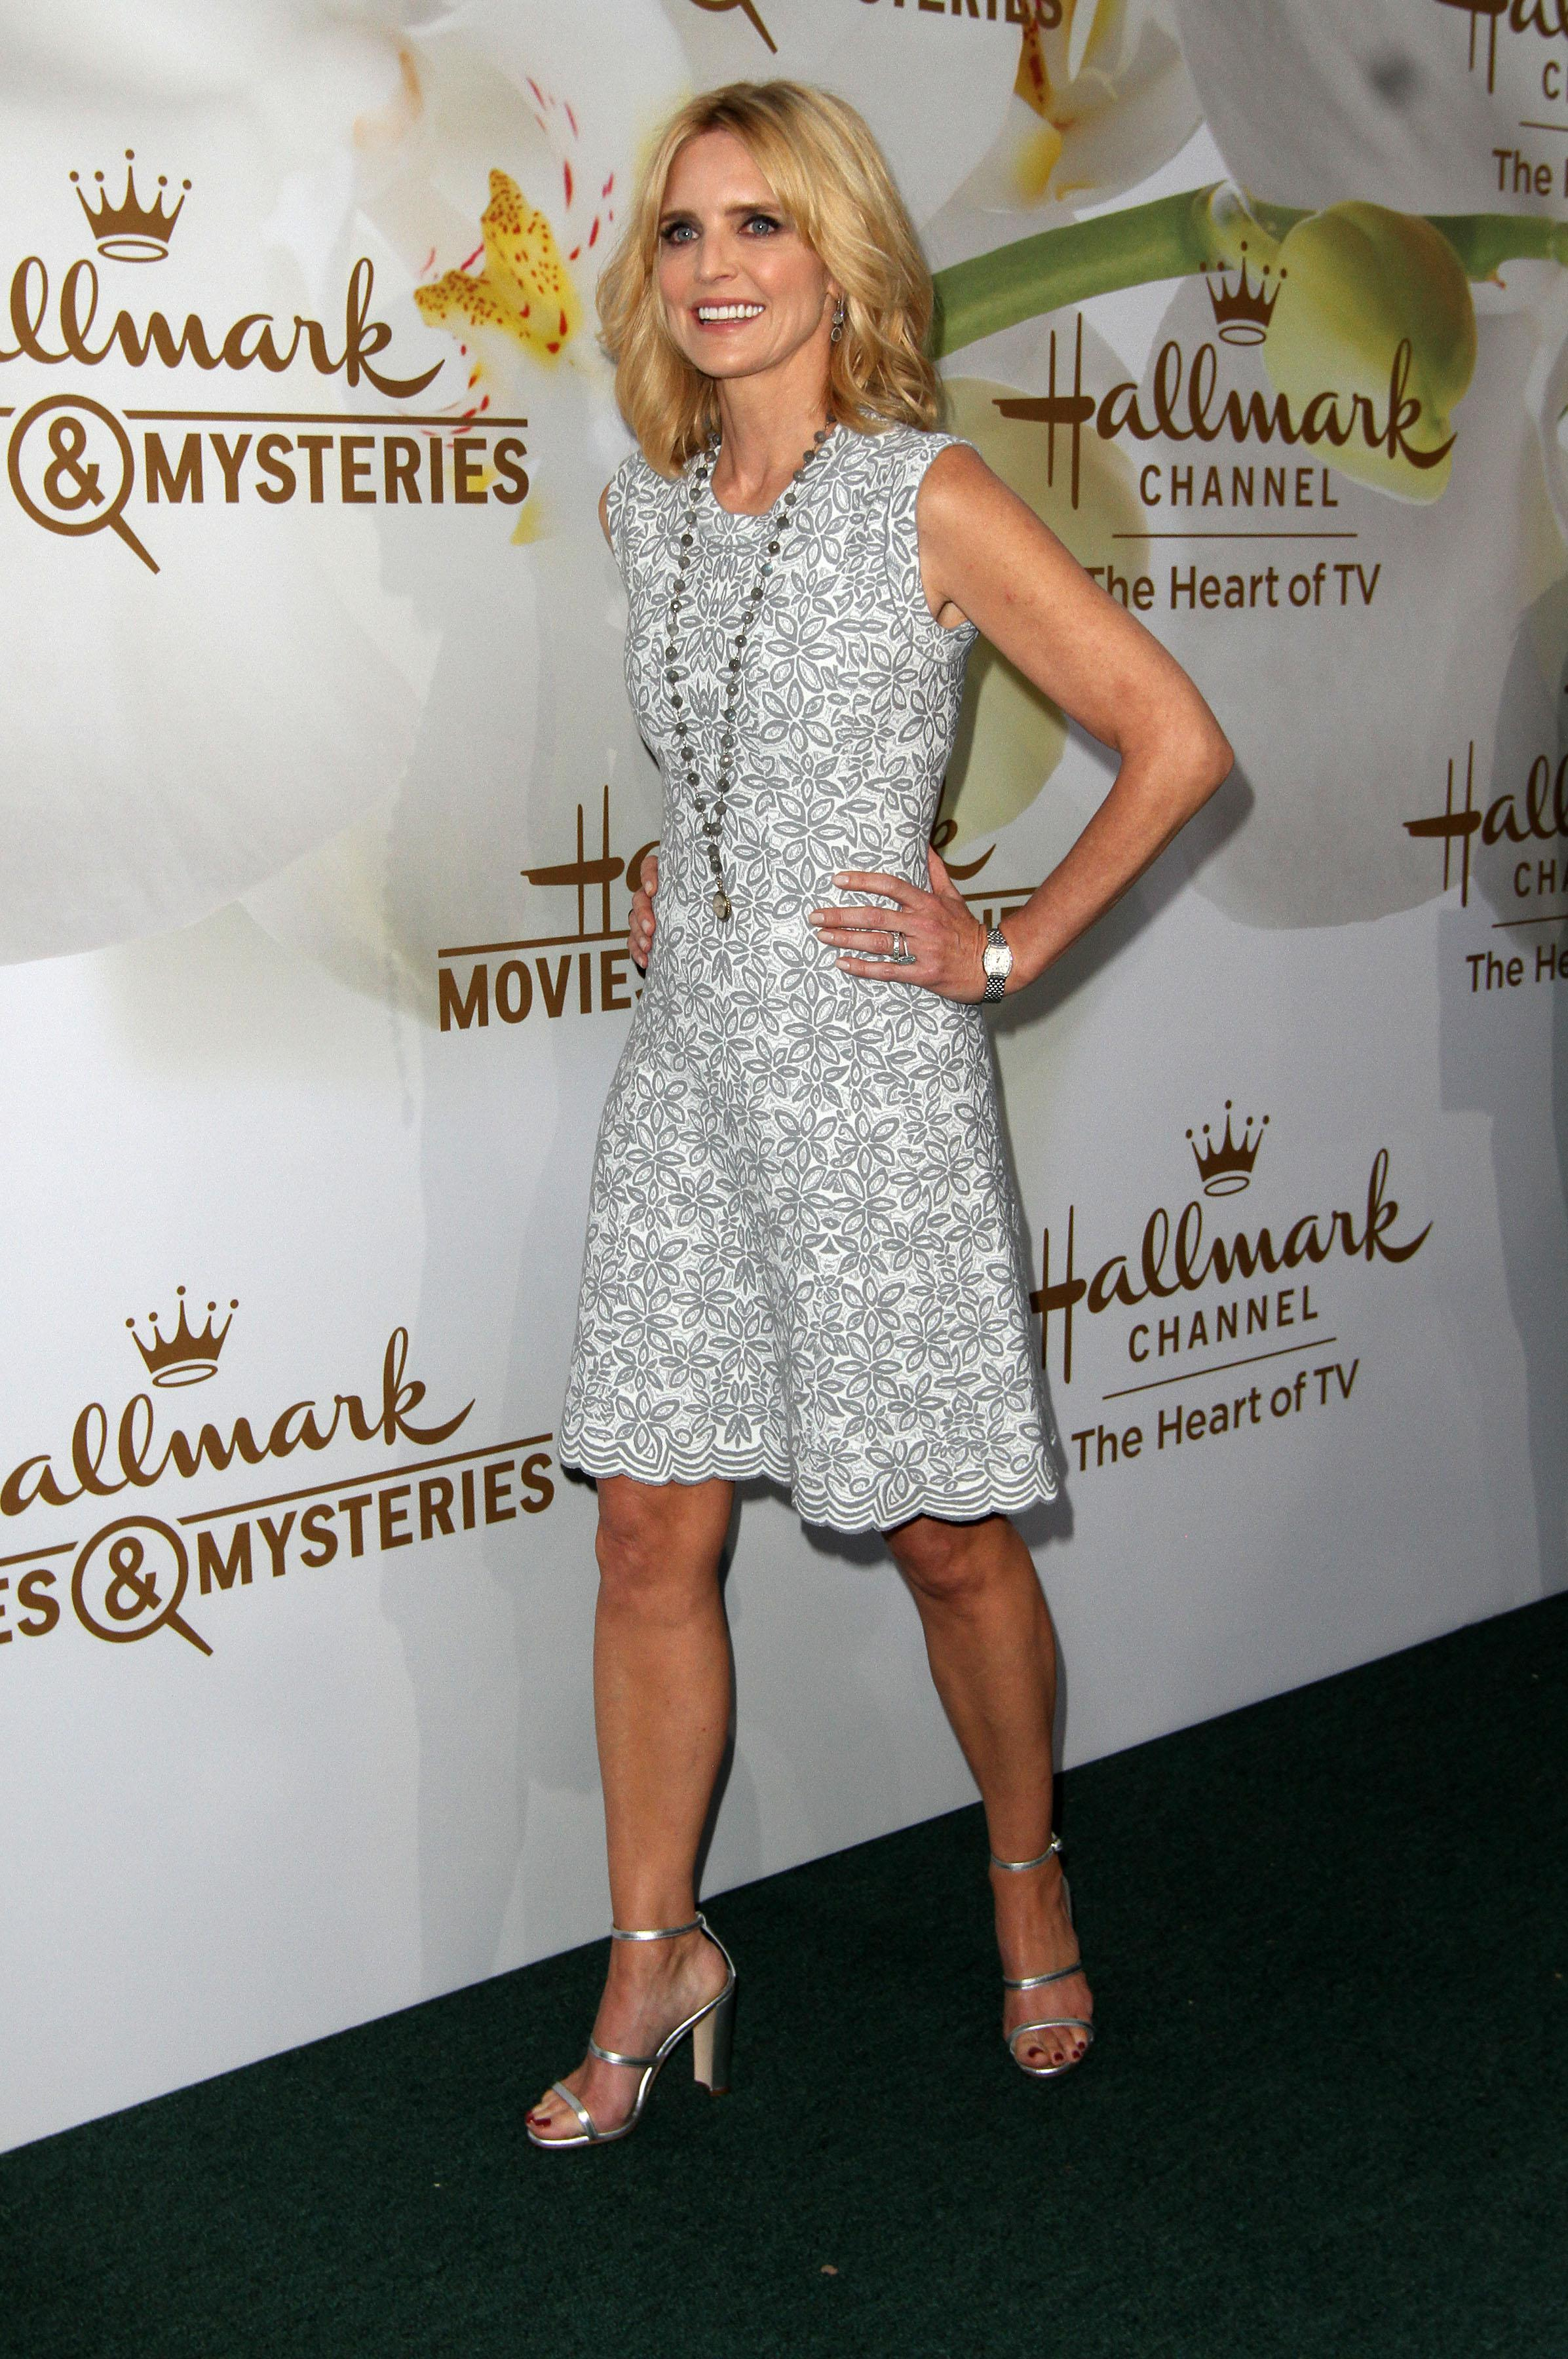 Courtney thorne smith high heels images 619